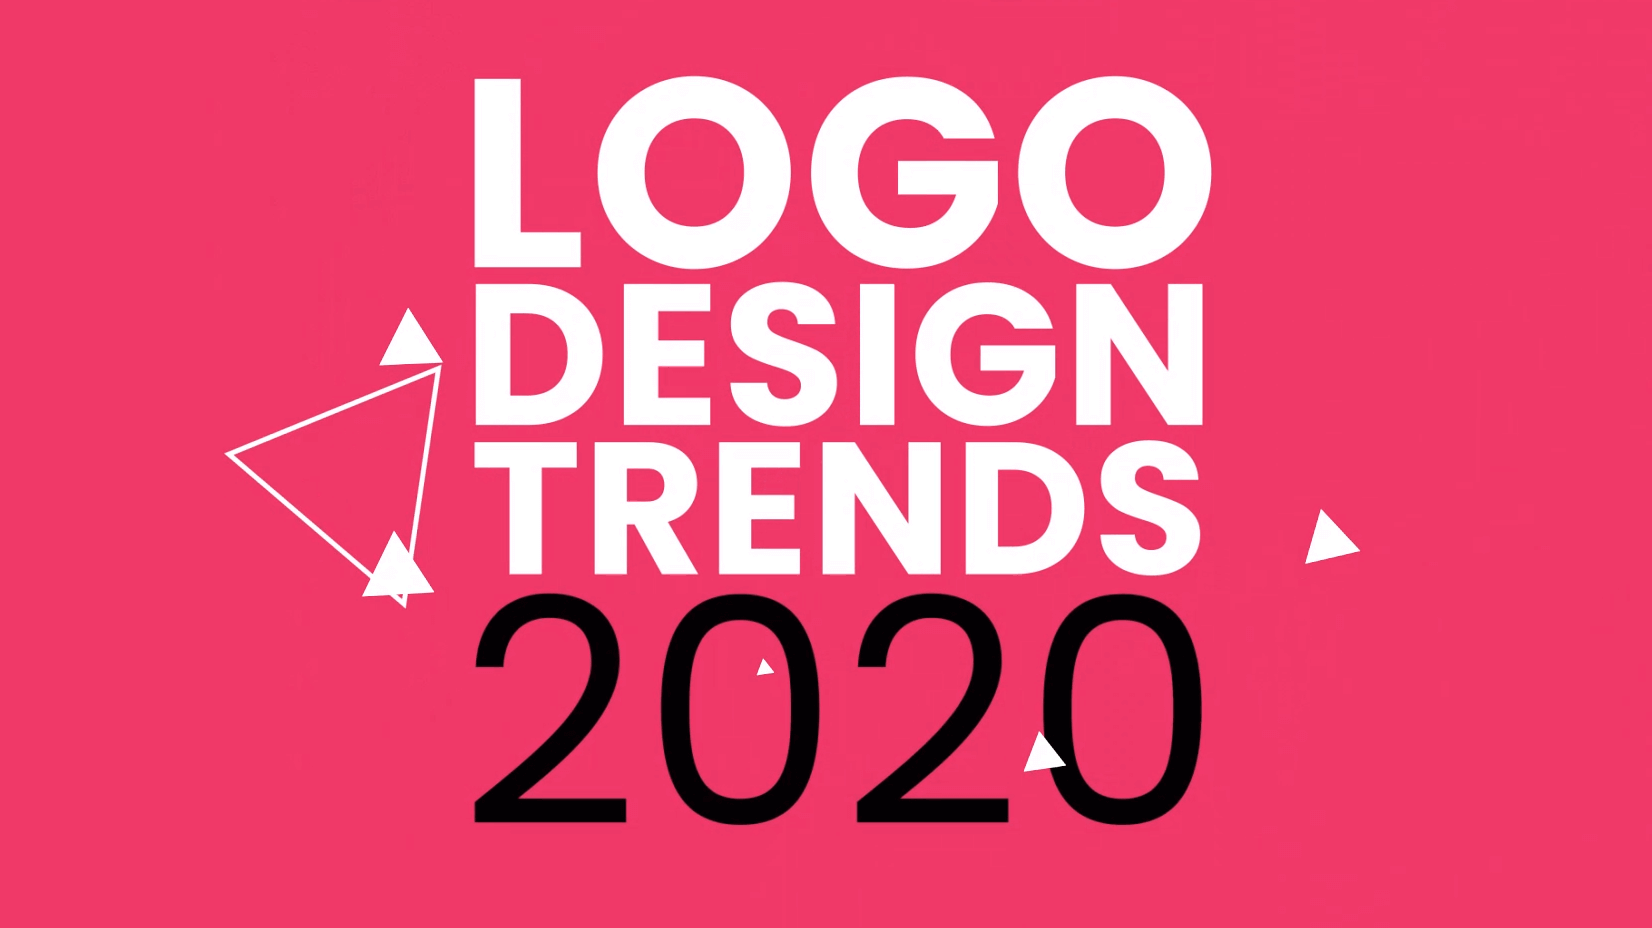 Trends 2020.Logo Design Trends 2020 A Blast Of Colors And Shapes